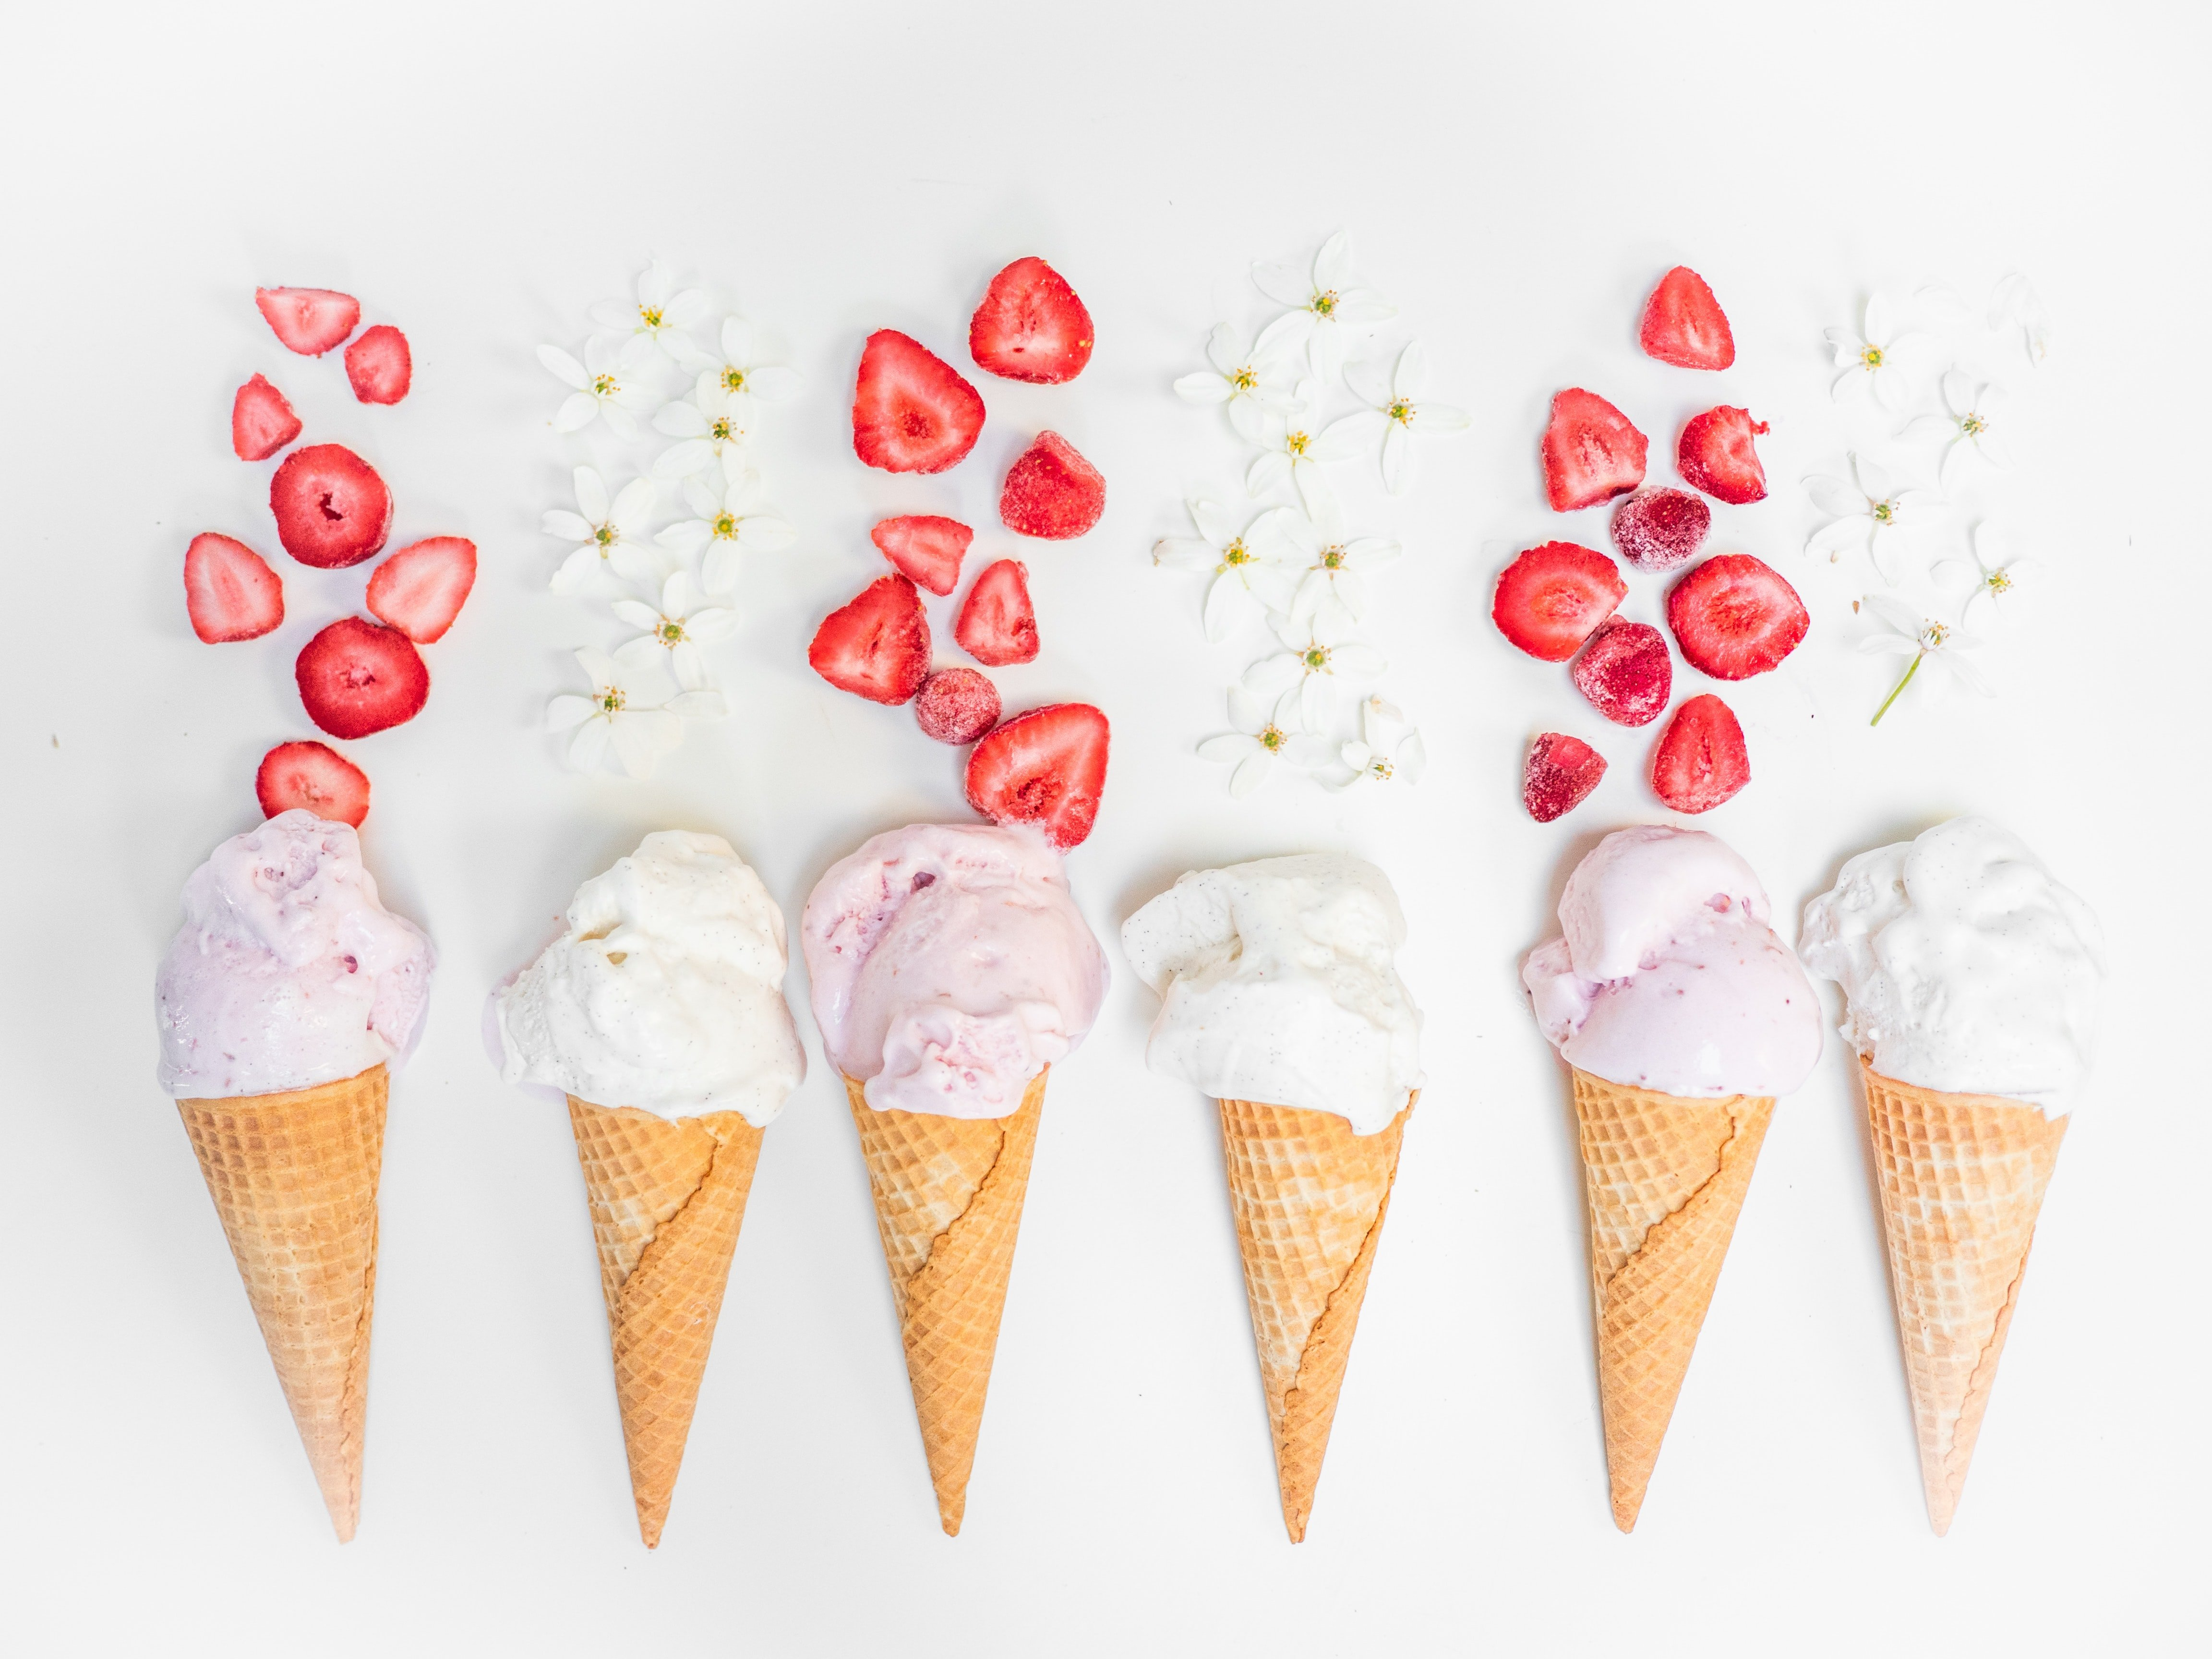 Blended Family Rituals: about ice cream, mustard and goodnight wishes